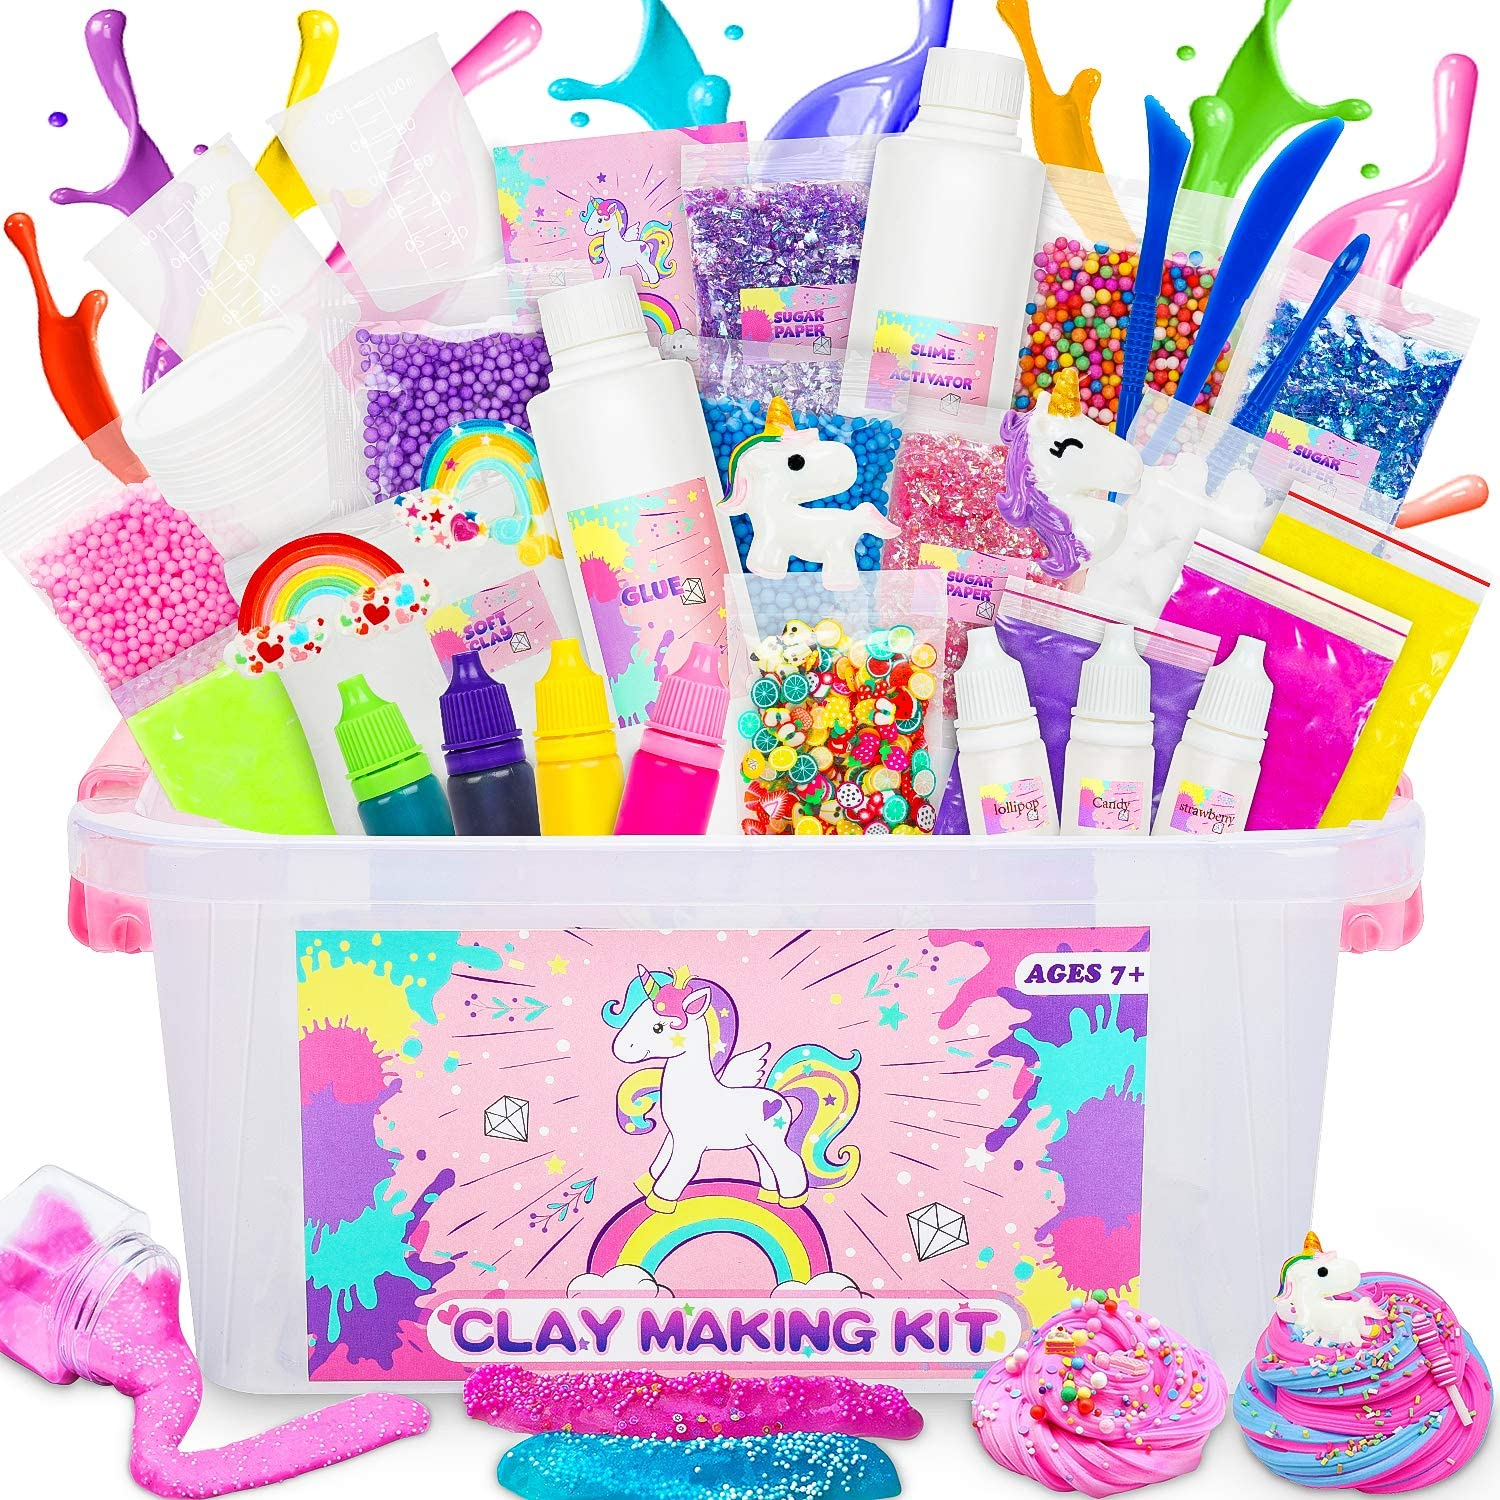 lenbest Slime Kit, Unicorn Slime Kit for Girls Boys with All Slime Supplies and Slime Manul in One Box to Make Unicorn, Cloud, Butter, Sparkle, Glowing & Foam Slime, Best Slime Gift for Kids